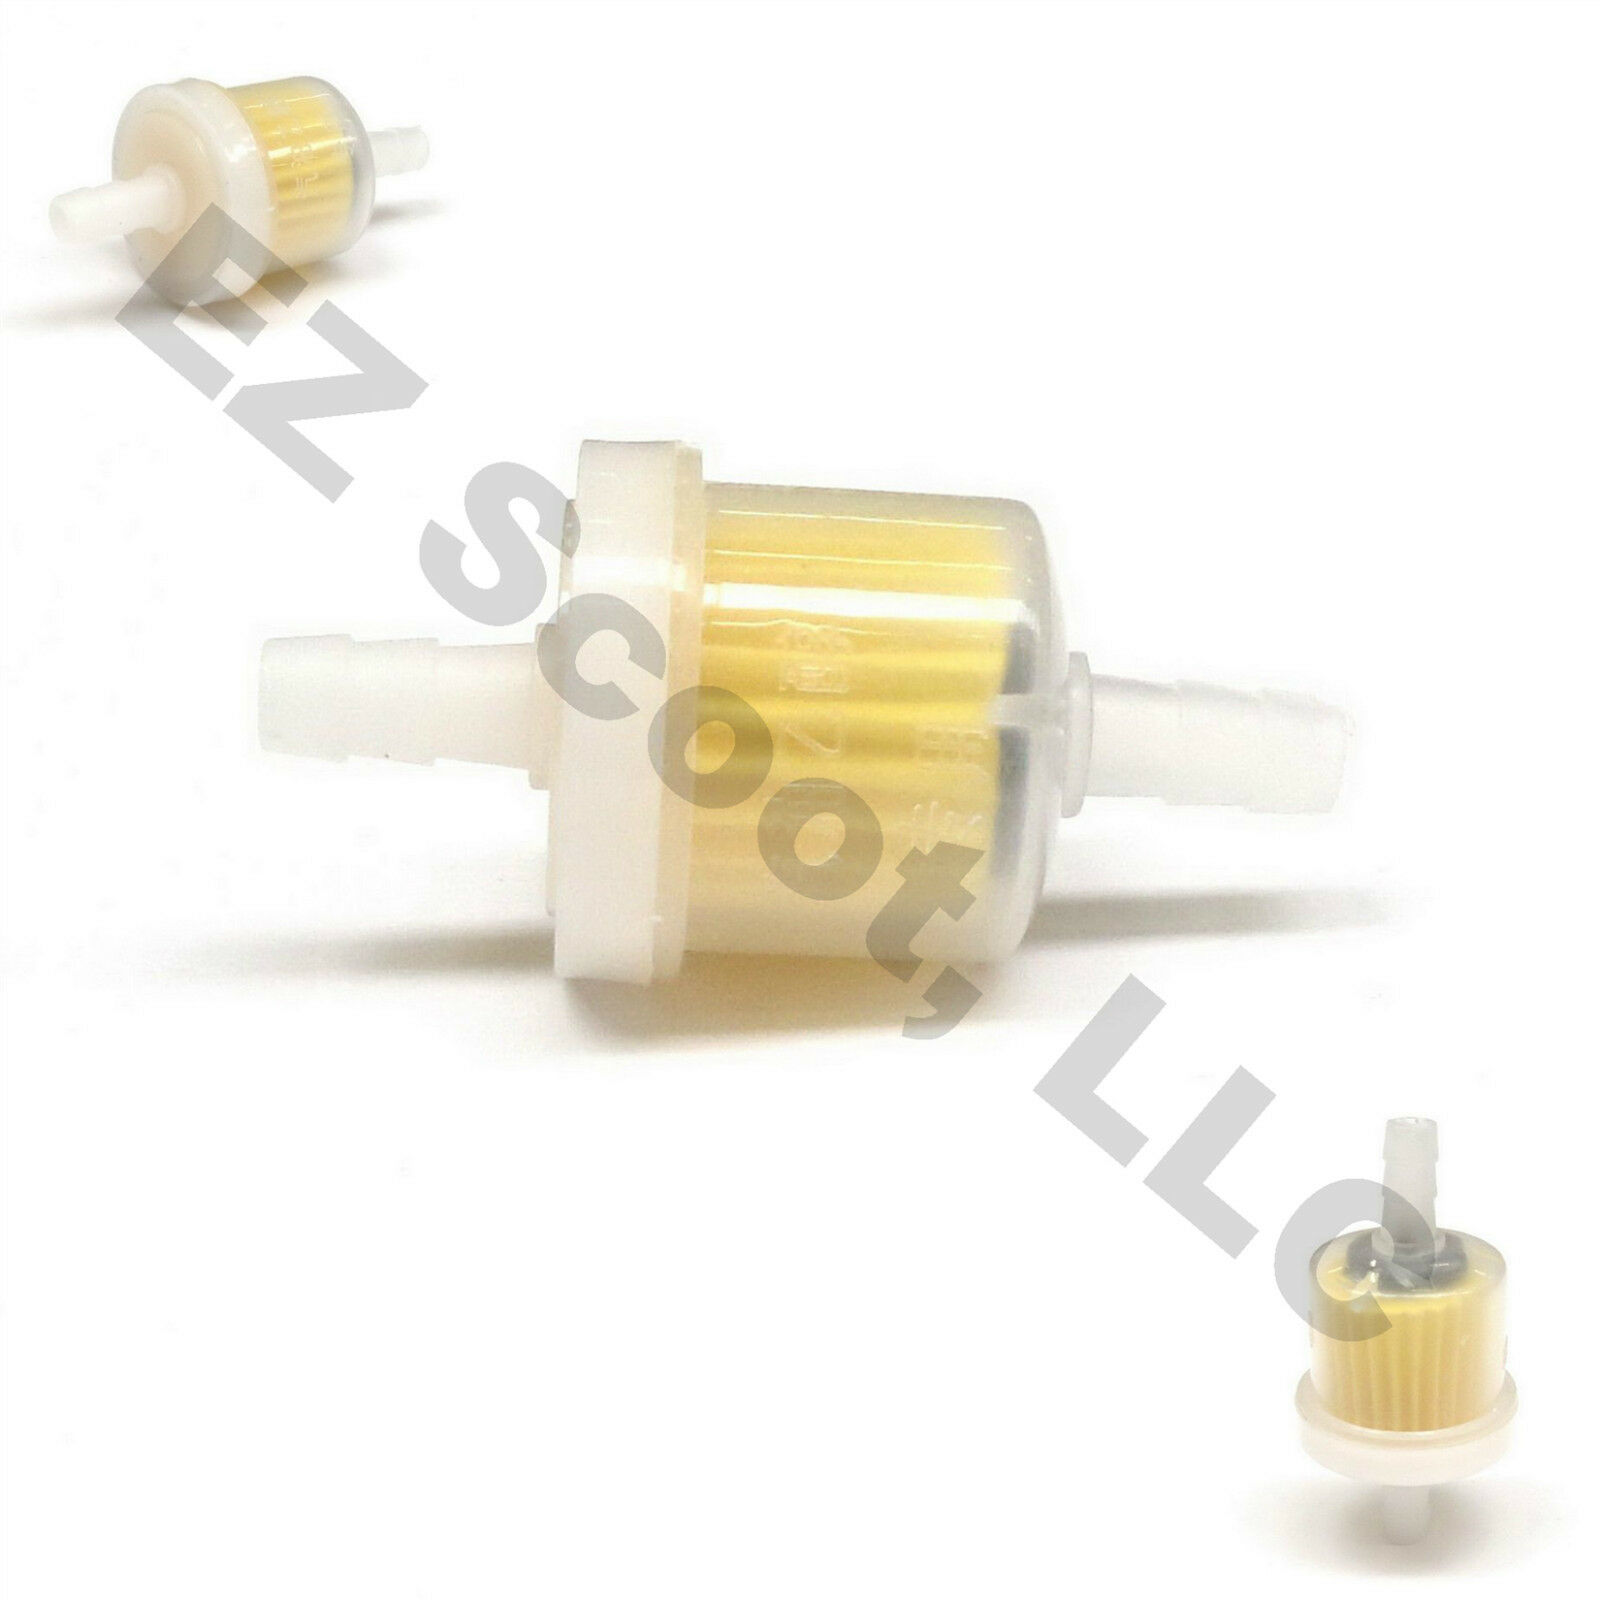 Universal Fuel Filter Gy6 2 4 Stroke Scooter Atv Kymco Roketa Tank Jcl Bms 249 Sunl 1 Of 3only Available